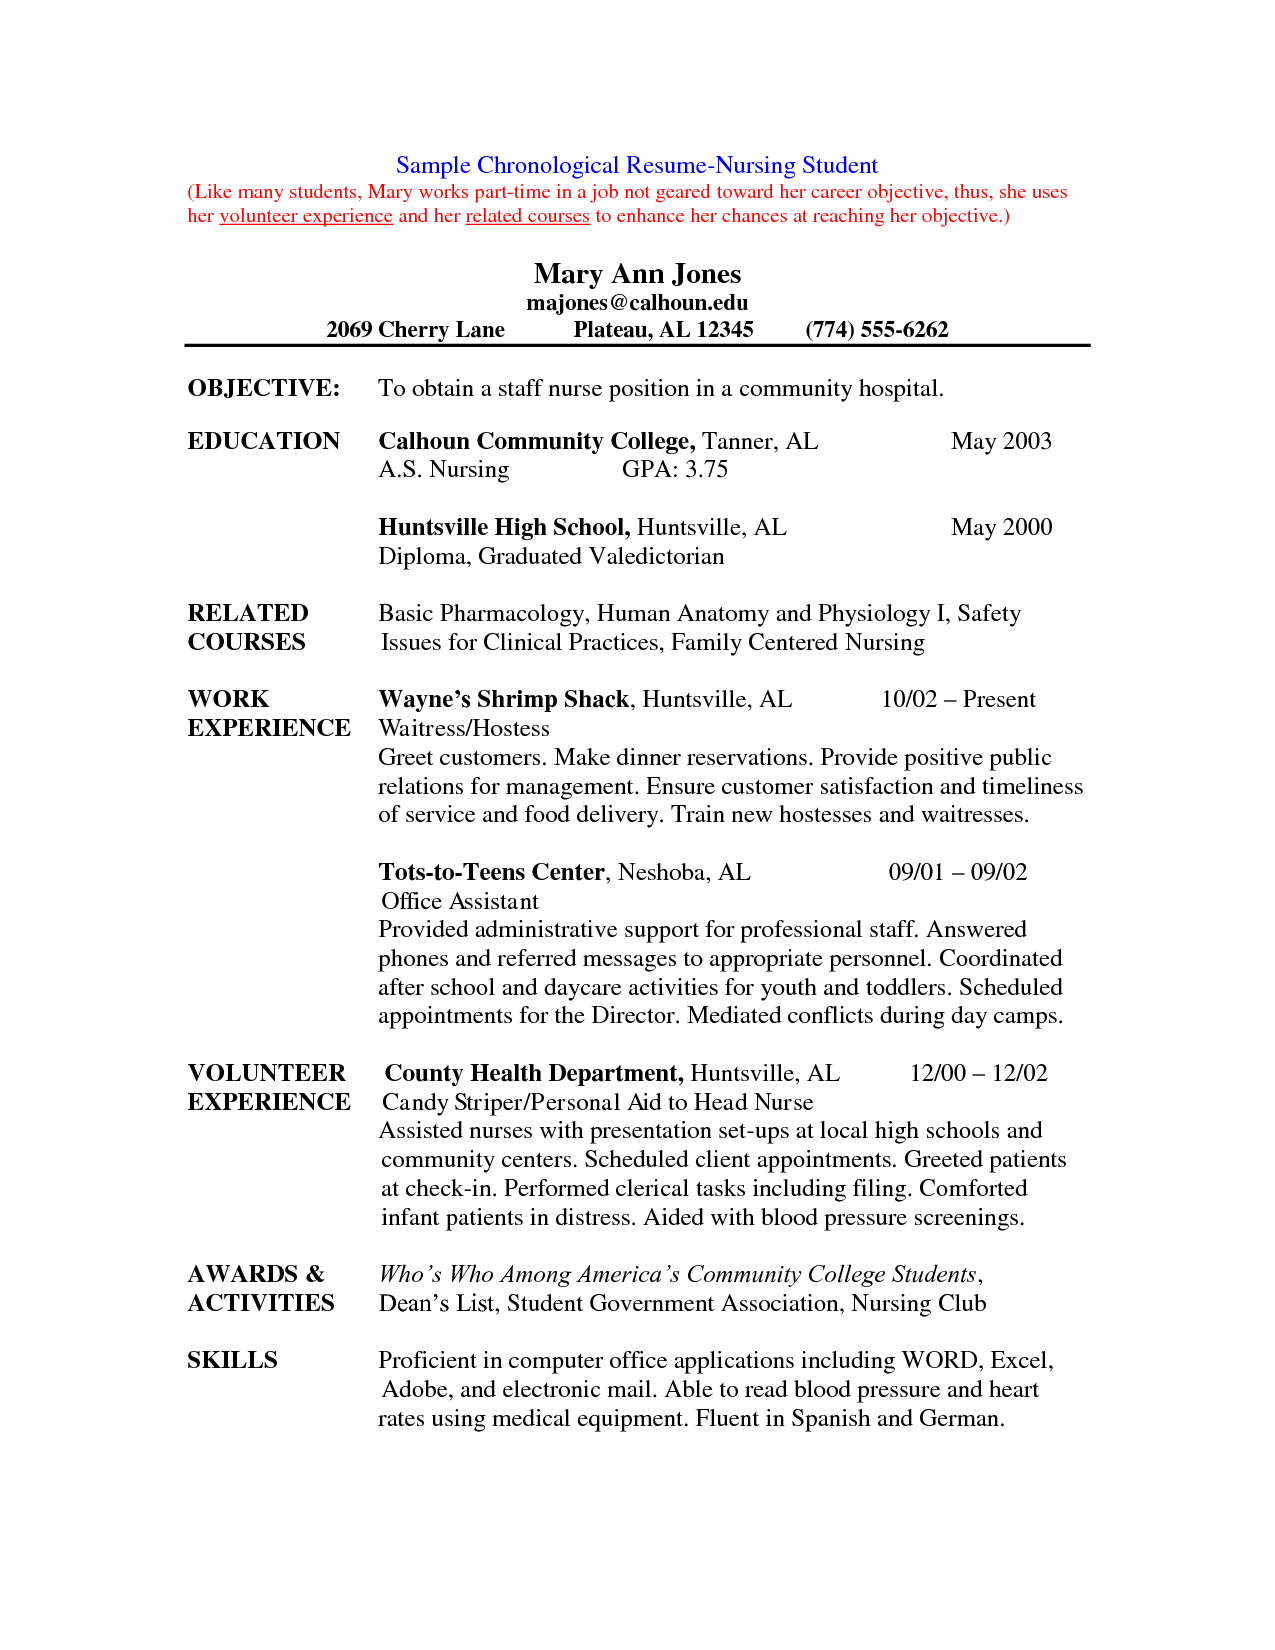 nursing student resume template hdresume templates cover letter examples - Resume Example Nurse